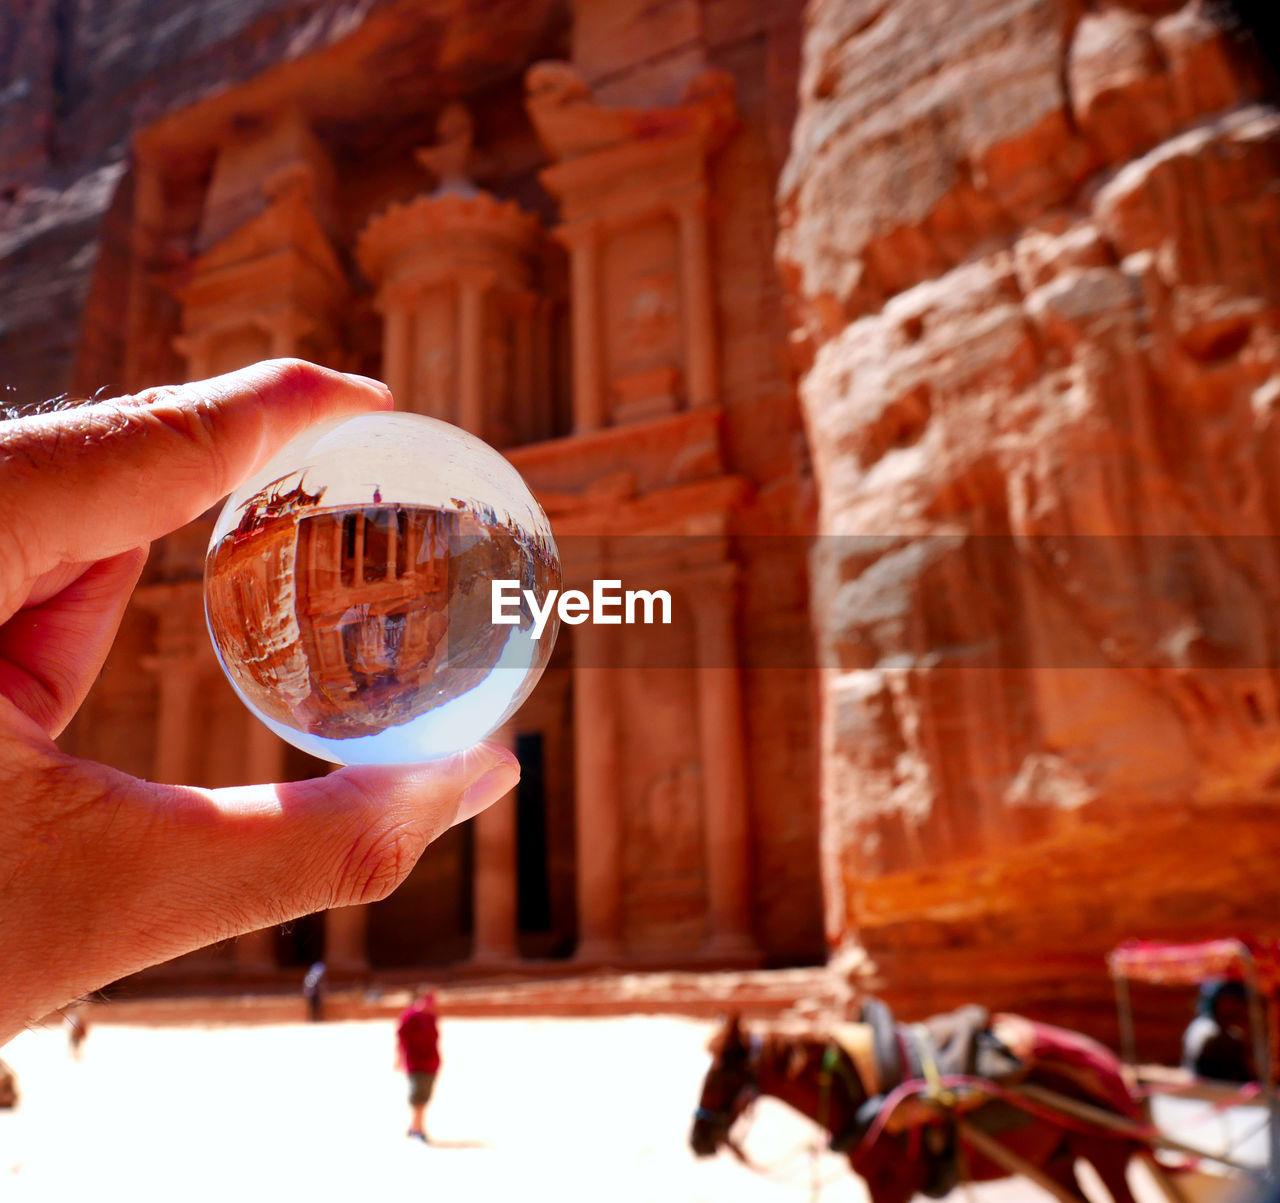 human hand, hand, holding, human body part, one person, focus on foreground, real people, unrecognizable person, built structure, sphere, architecture, lifestyles, crystal ball, human finger, finger, body part, day, building exterior, building, outdoors, glass, human limb